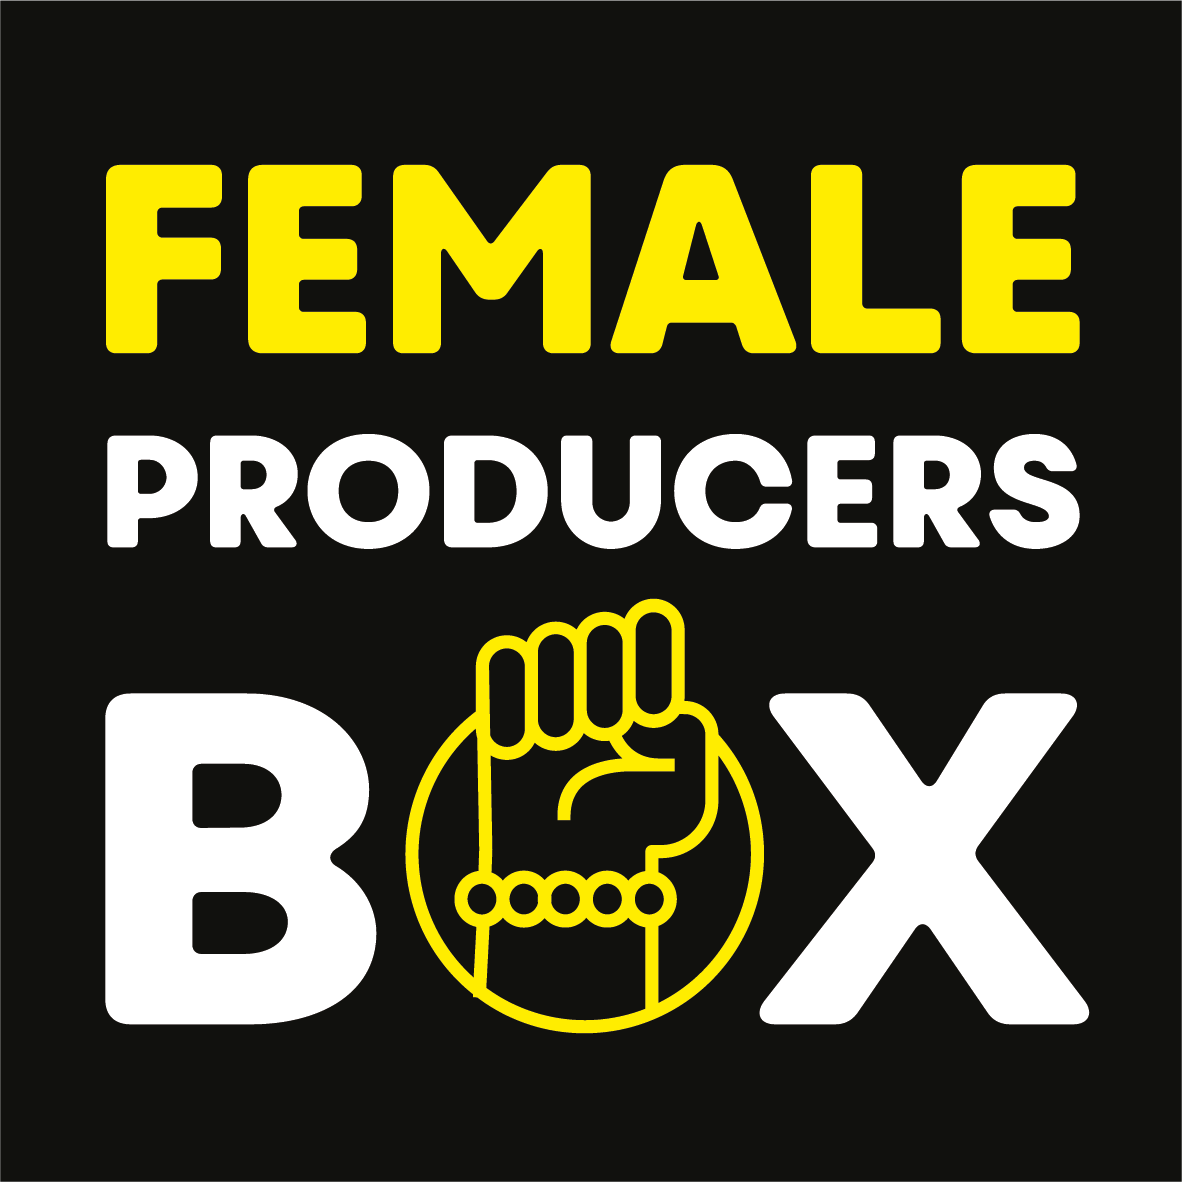 Female Producers Box